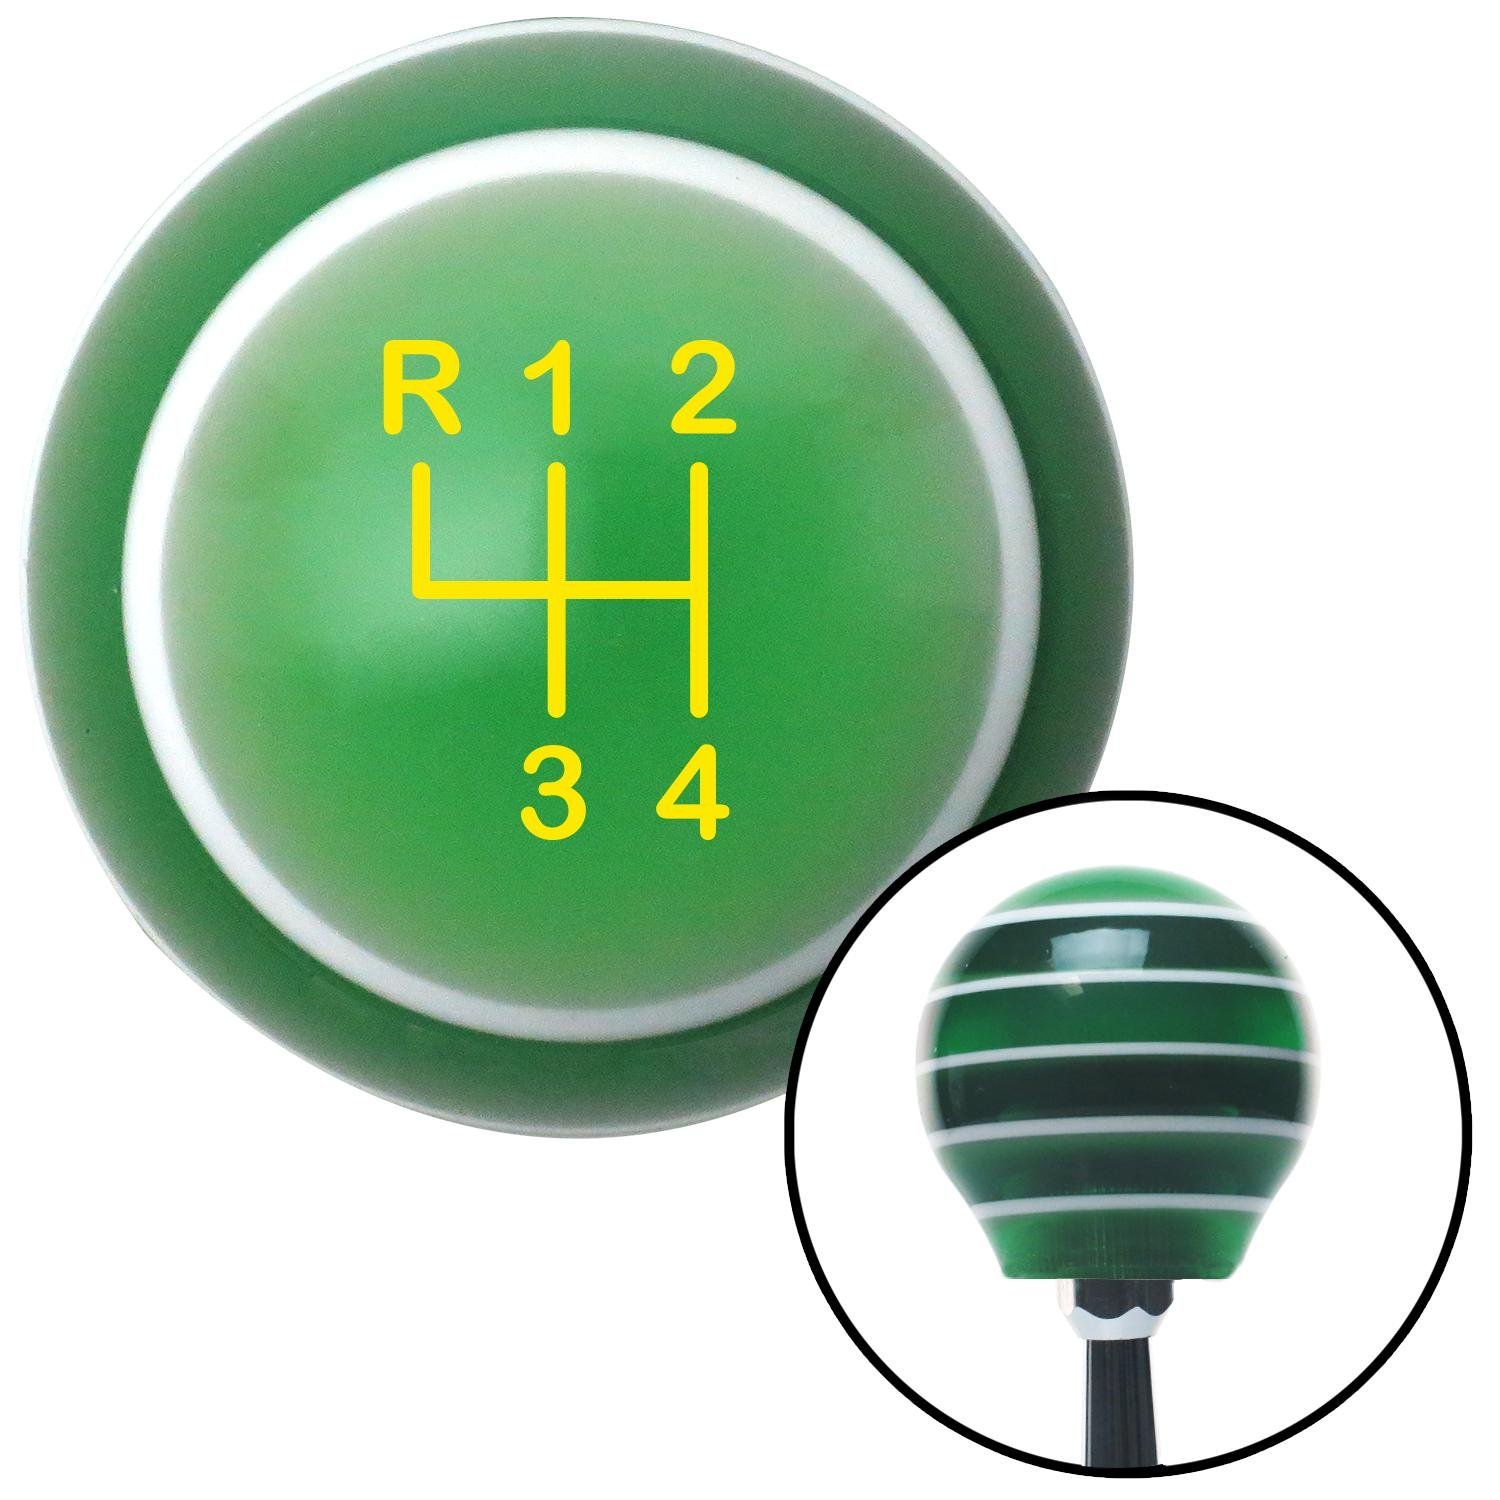 Yellow Shift Pattern 44n American Shifter 127182 Green Stripe Shift Knob with M16 x 1.5 Insert